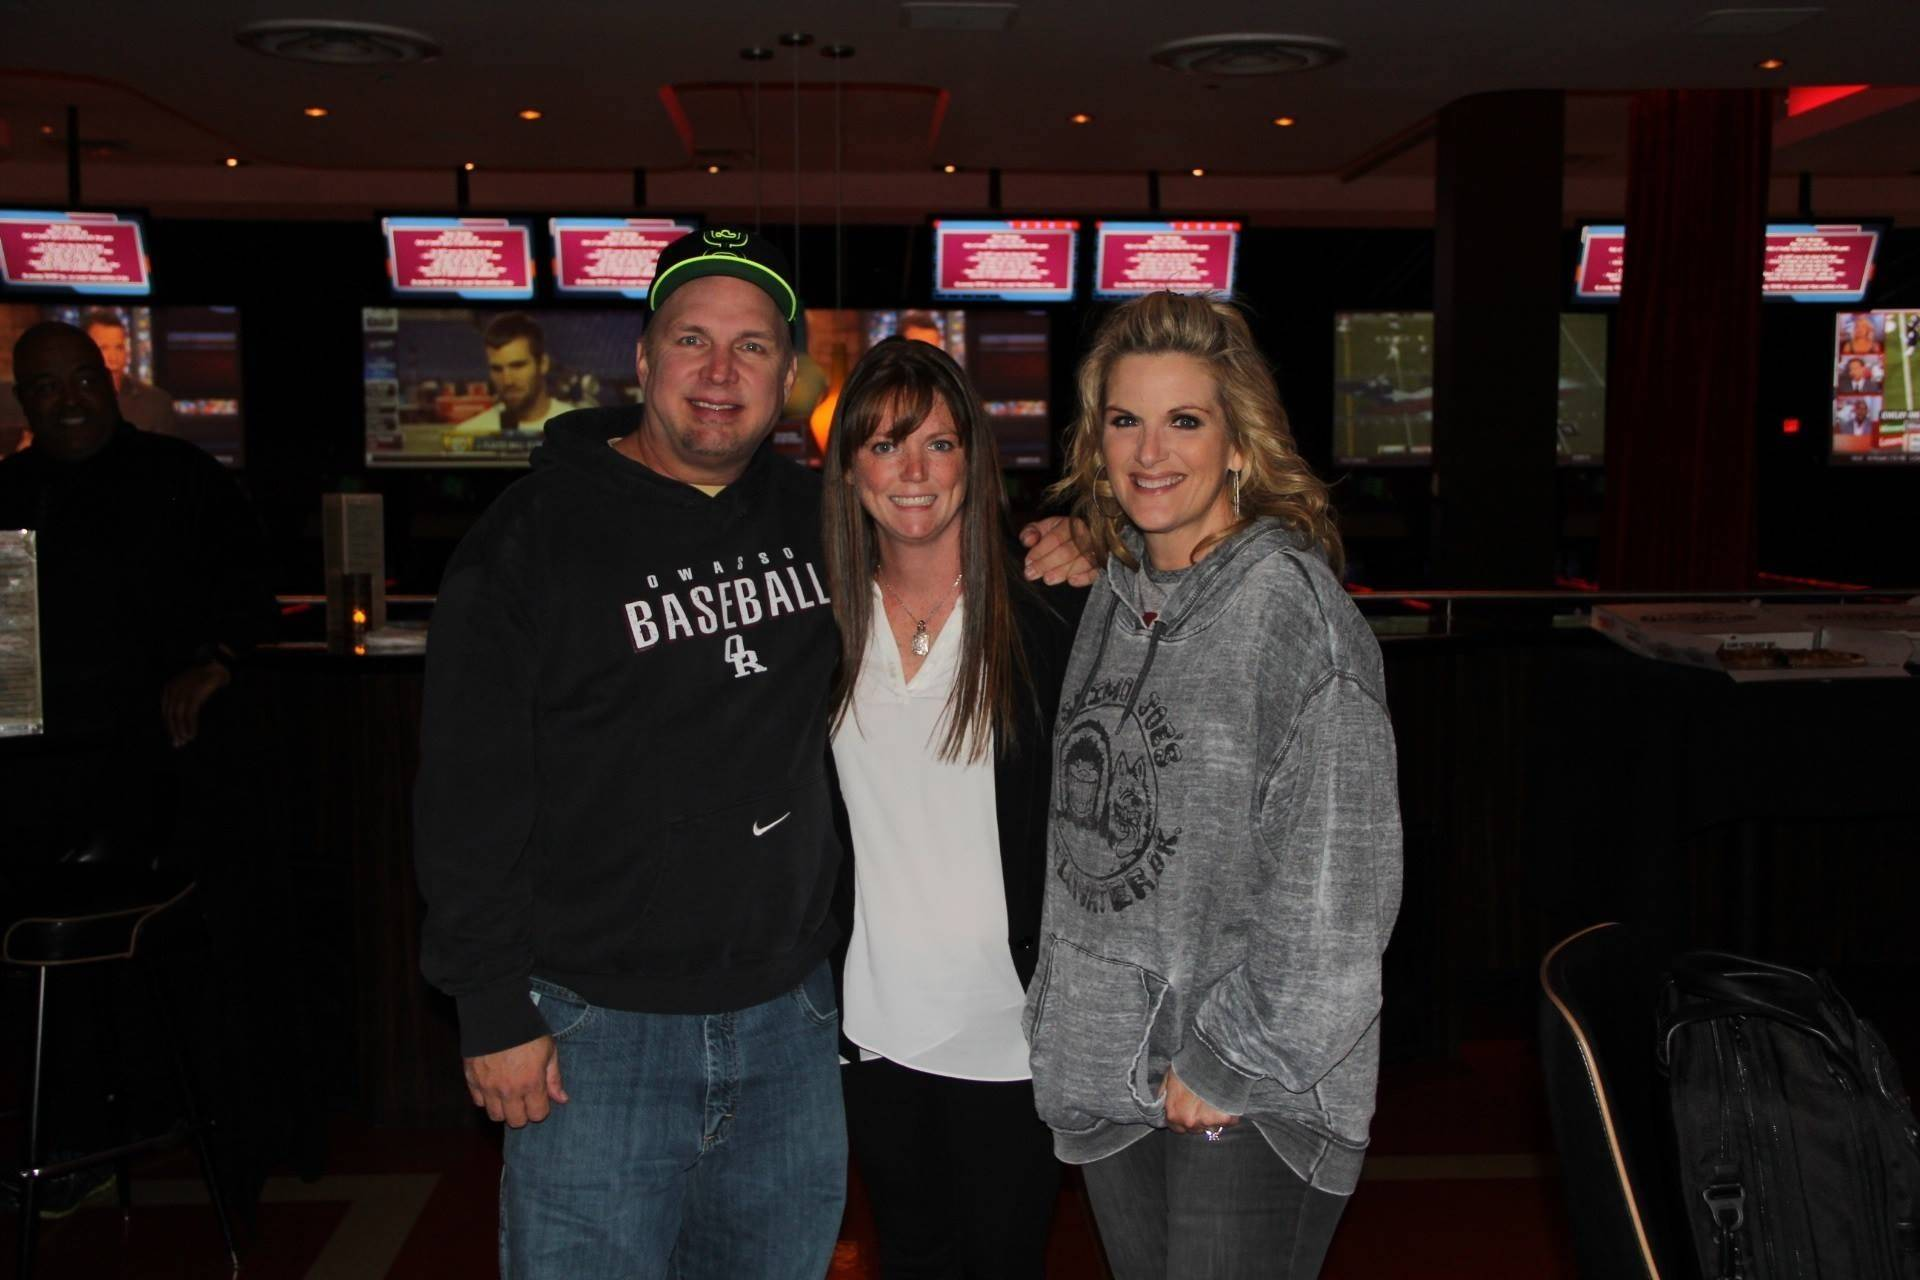 Garth and Trisha knock down pins at Kings bowling alley in Rosemont